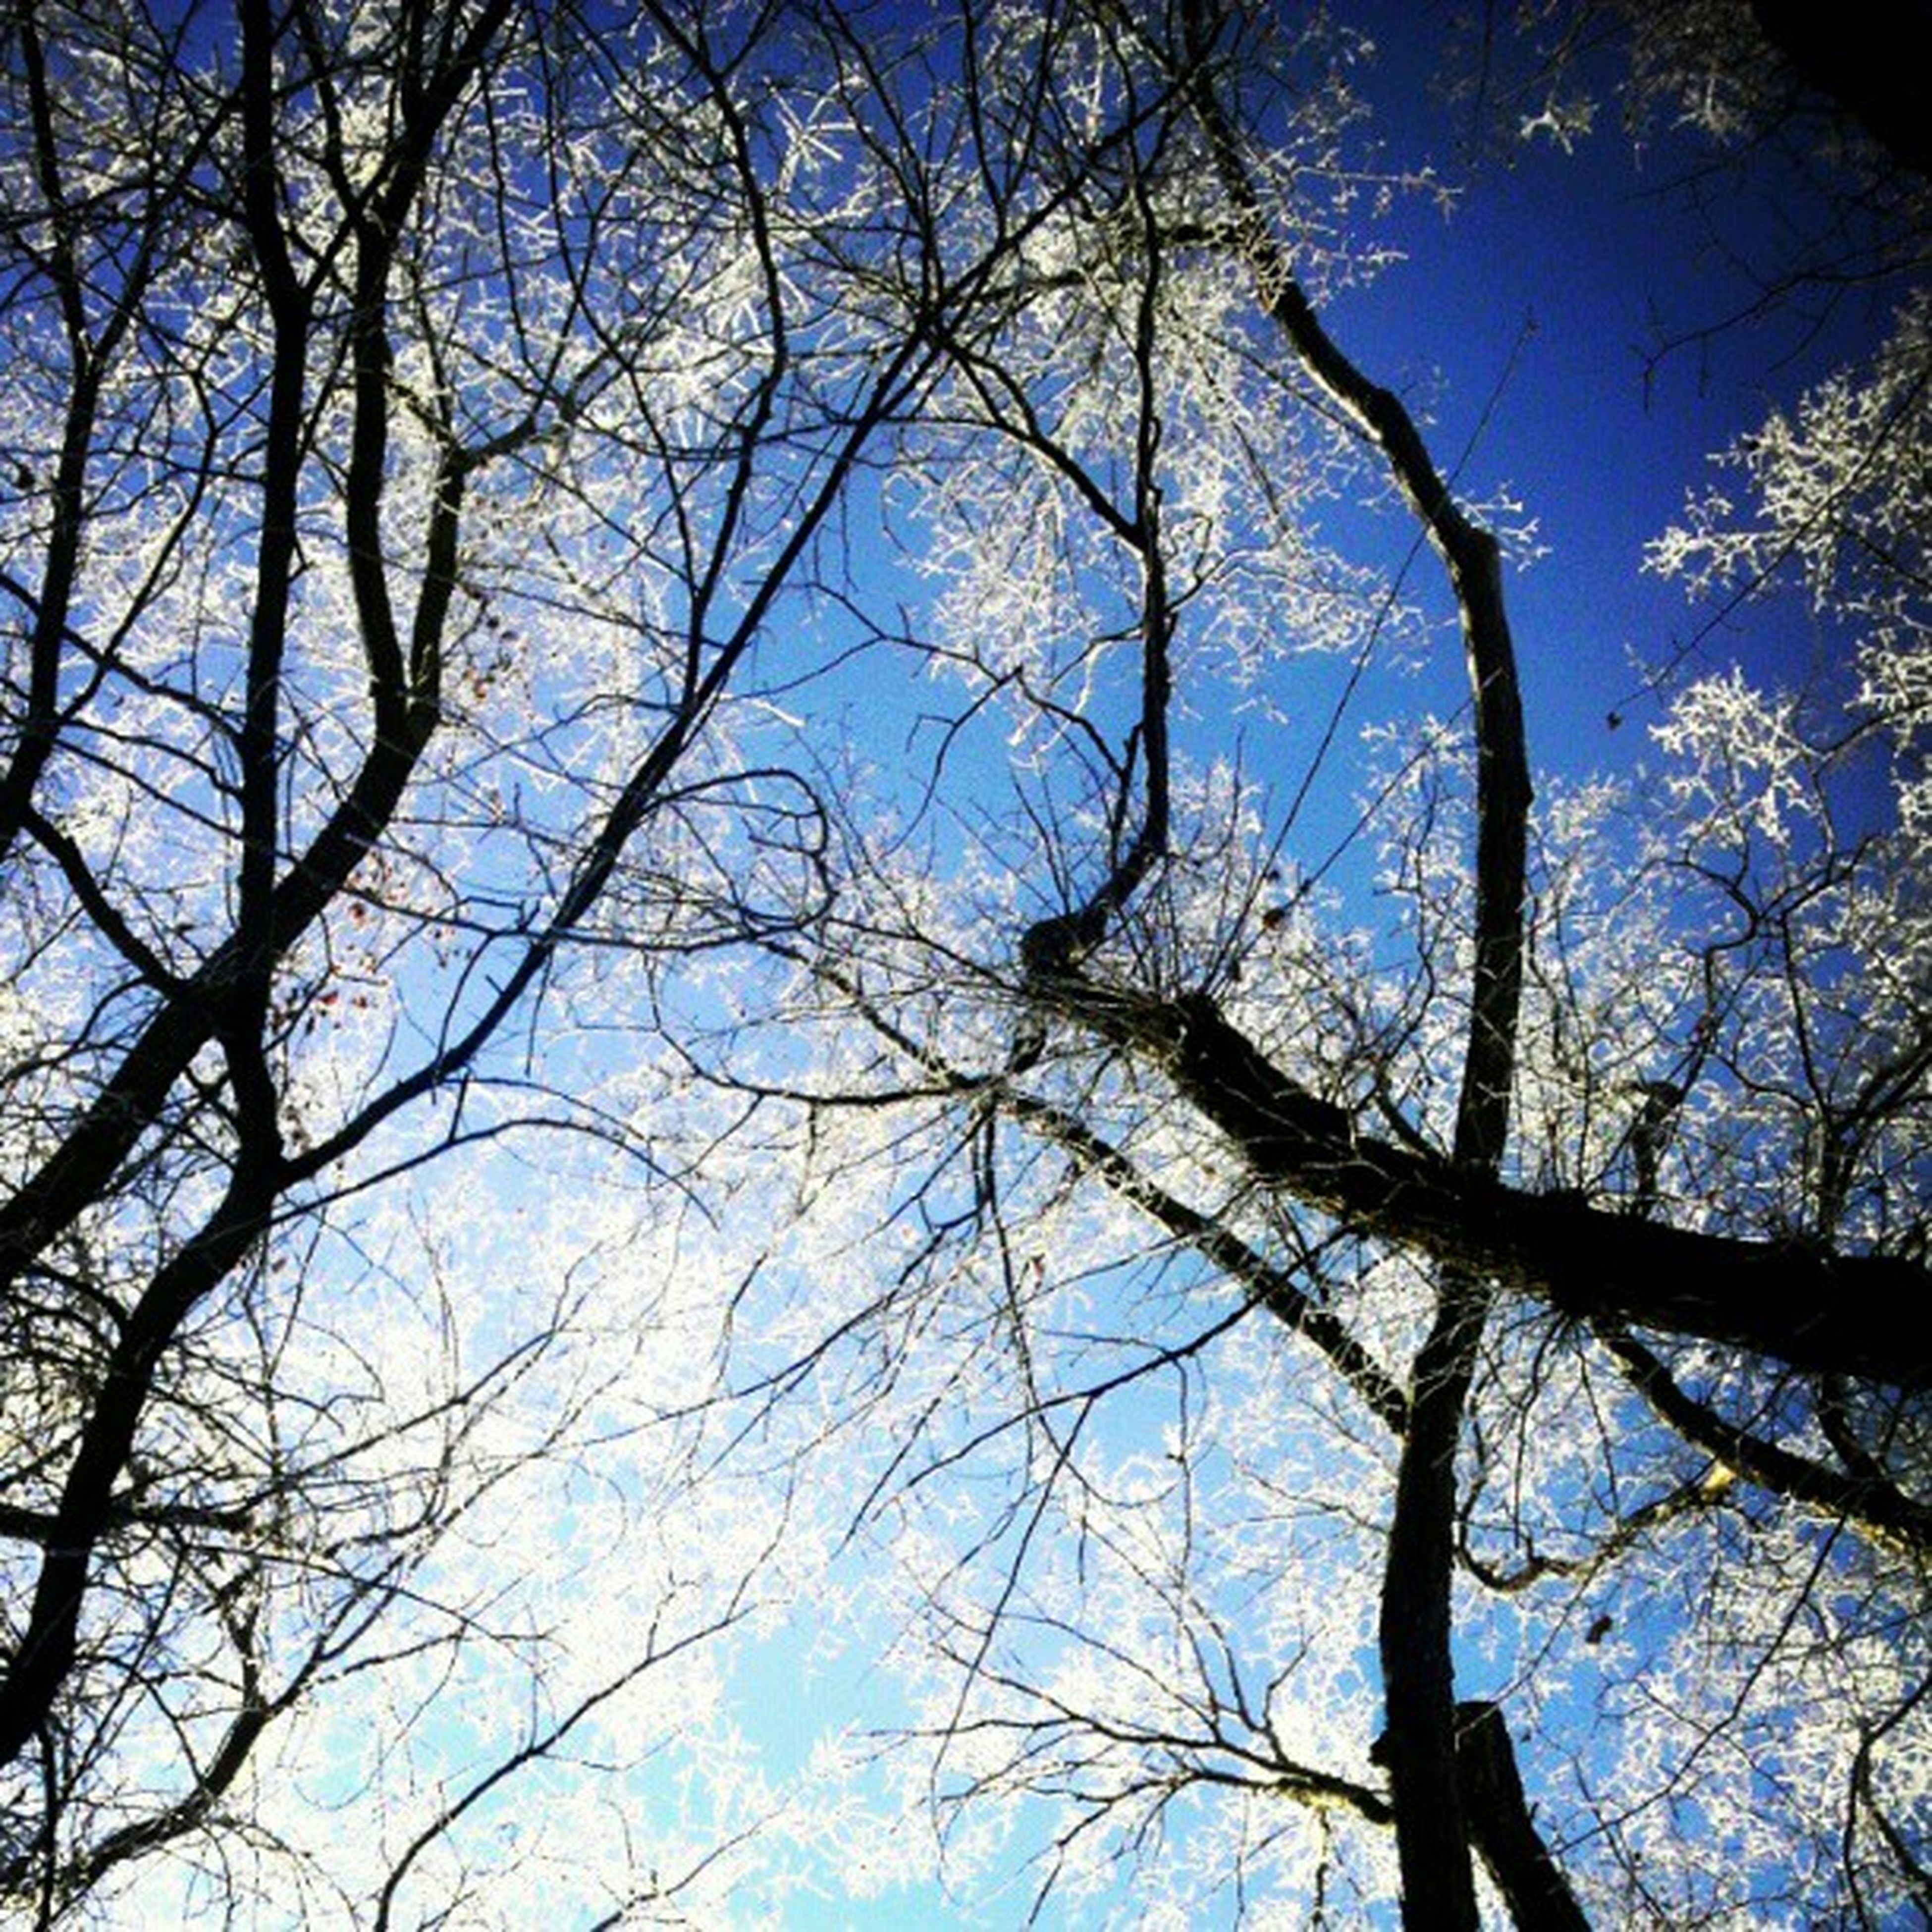 branch, tree, low angle view, bare tree, sky, nature, blue, tranquility, beauty in nature, scenics, clear sky, growth, tree trunk, silhouette, outdoors, no people, day, tranquil scene, backgrounds, high section